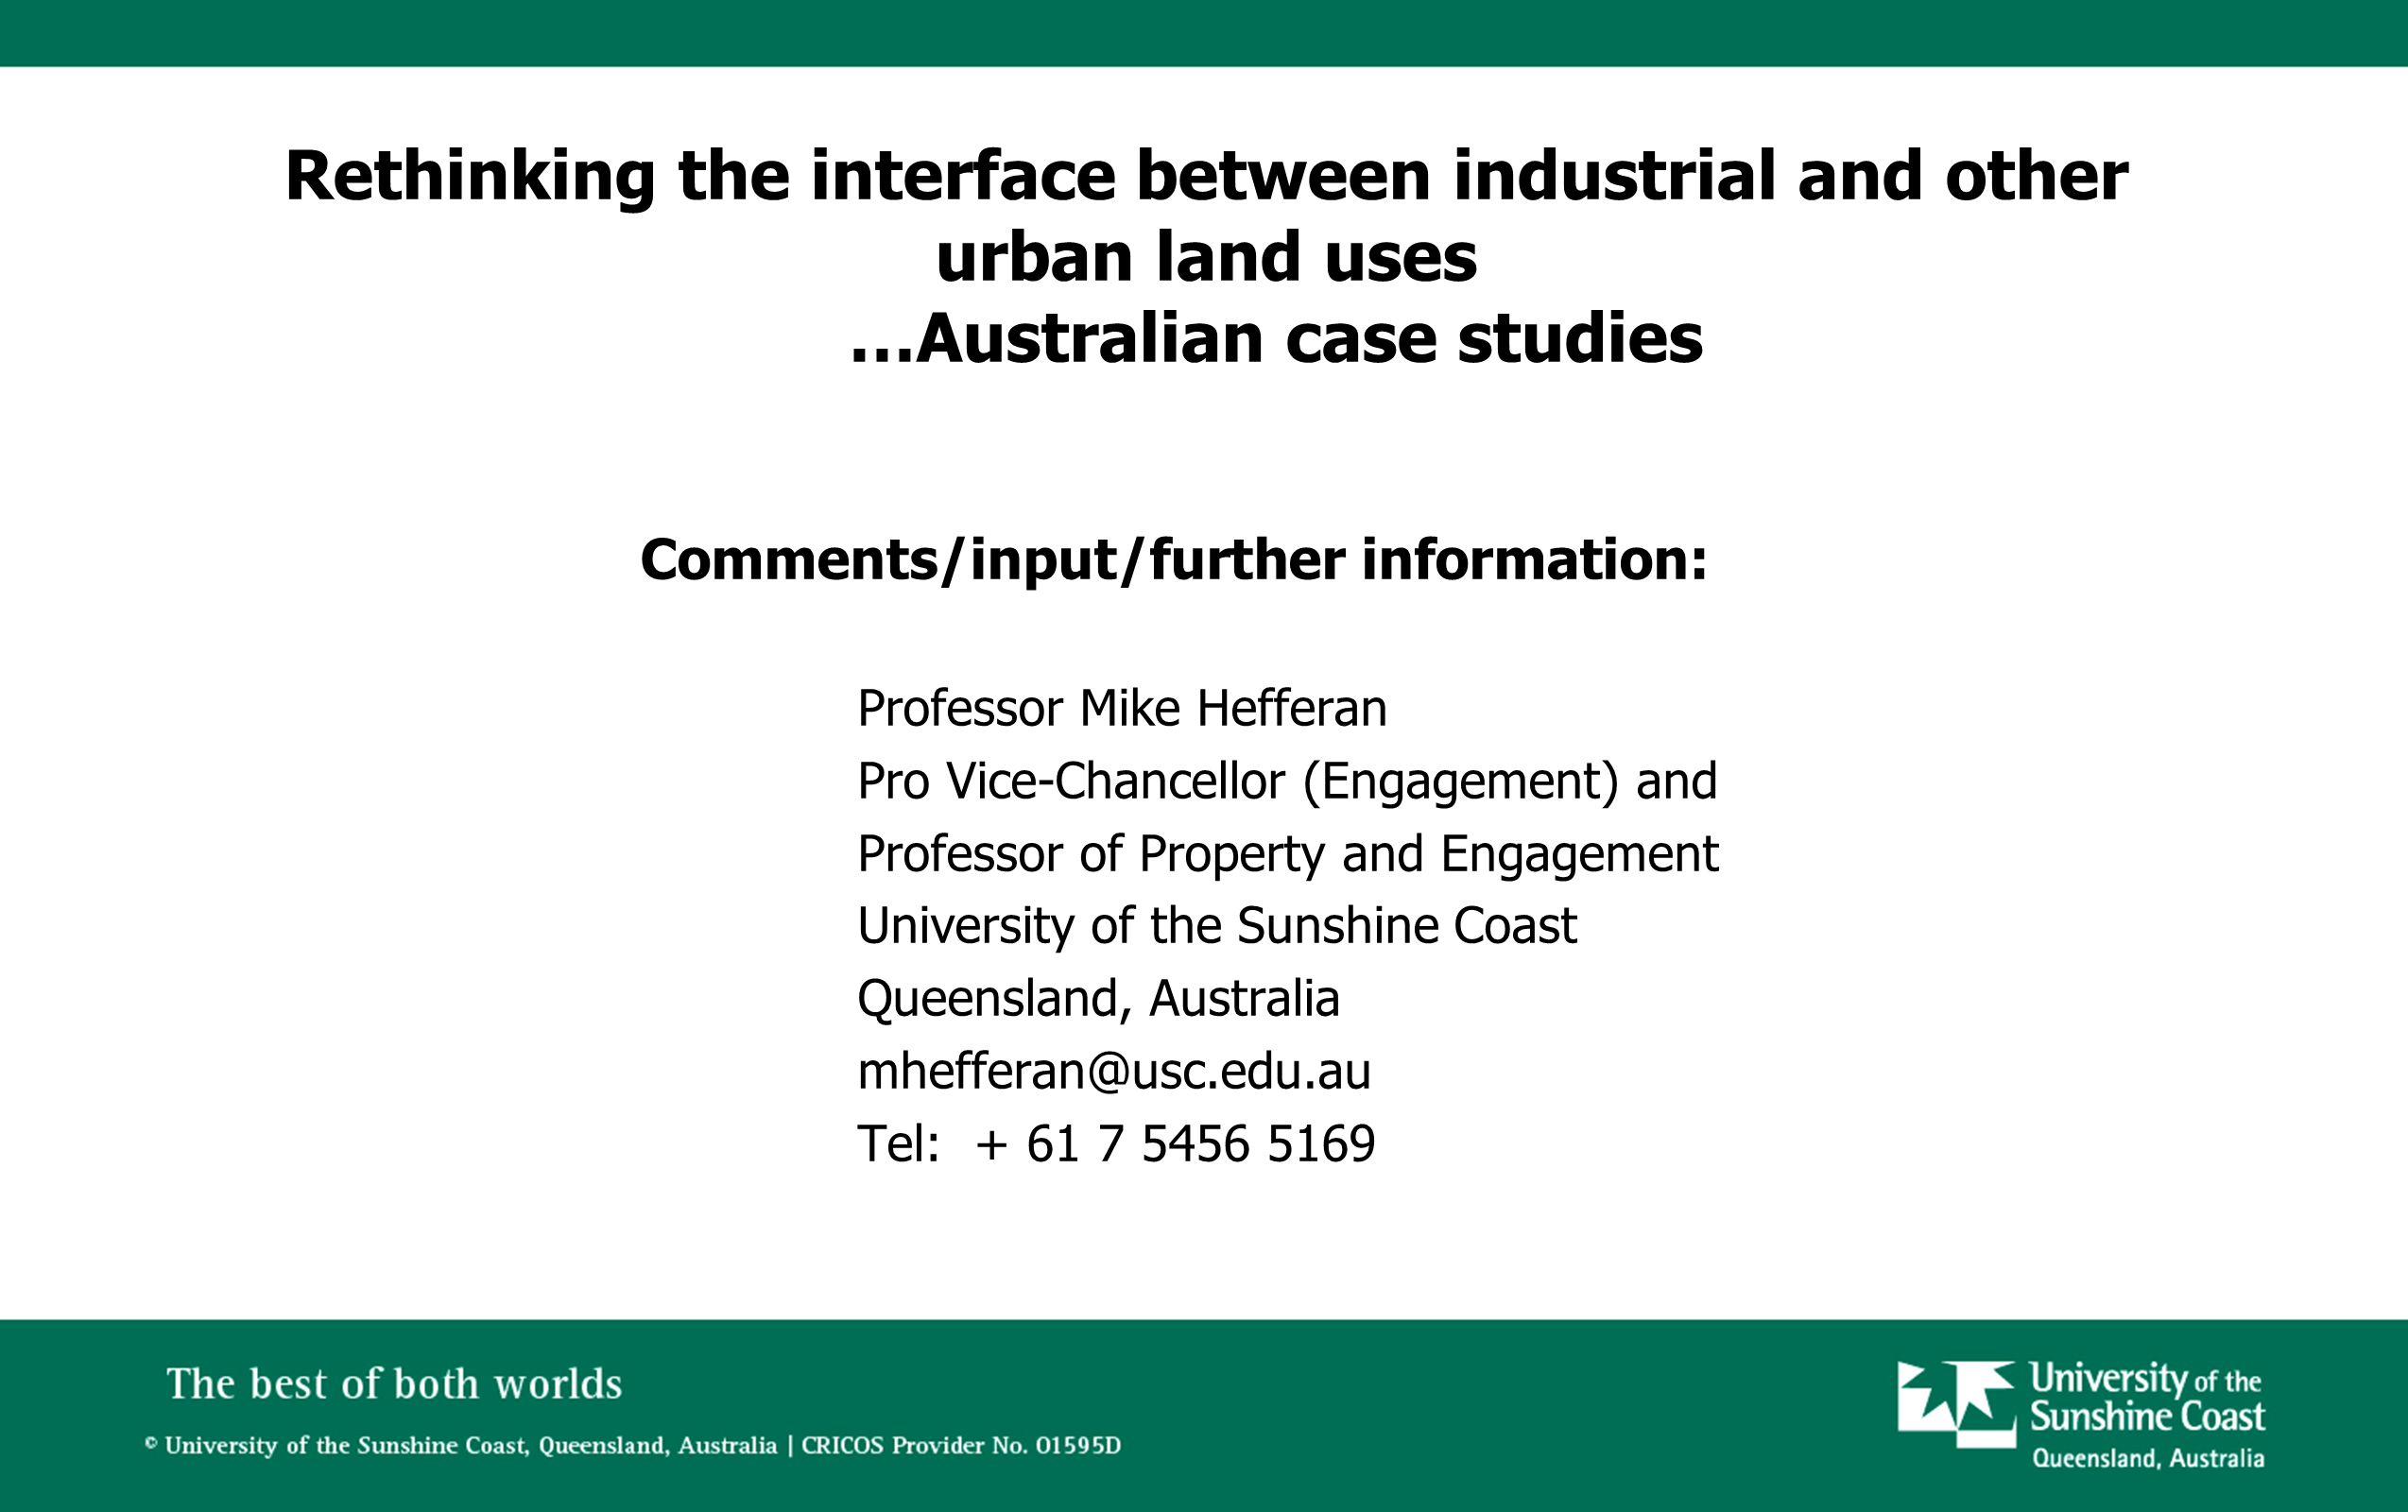 Rethinking the interface between industrial and other urban land uses …Australian case studies Comments/input/further information: Professor Mike Hefferan Pro Vice-Chancellor (Engagement) and Professor of Property and Engagement University of the Sunshine Coast Queensland, Australia mhefferan@usc.edu.au Tel: + 61 7 5456 5169